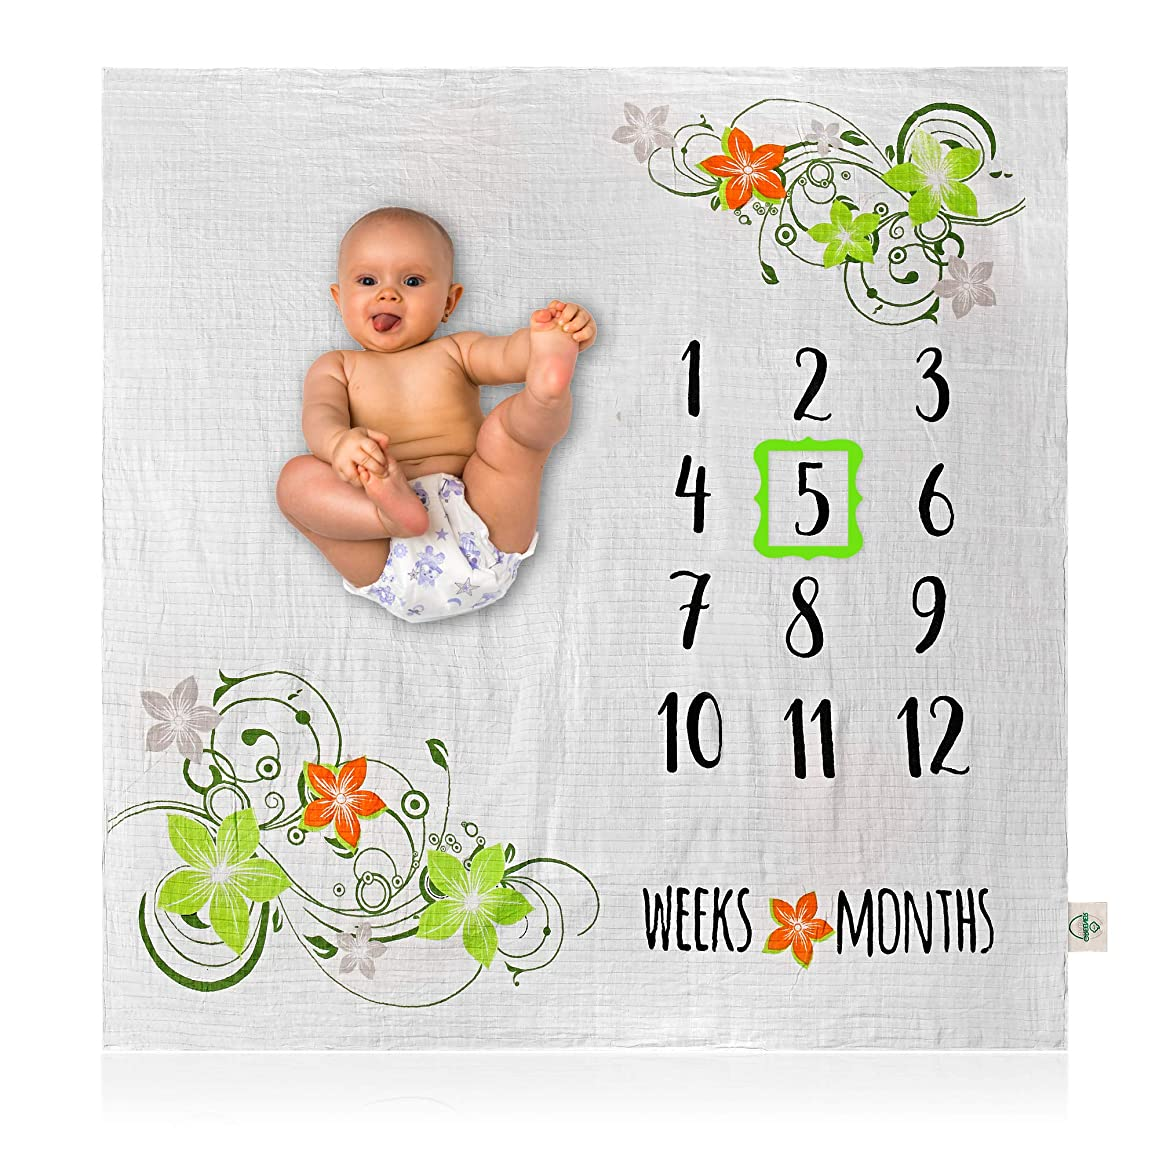 Organic Bamboo Baby Milestone Blanket - Photo Prop for Yearly, Monthly or Weekly Pictures, Girl or Boy, Bamboo Cotton Muslin Swaddle Month Blankets, Personalized Shower Gifts, Large 47